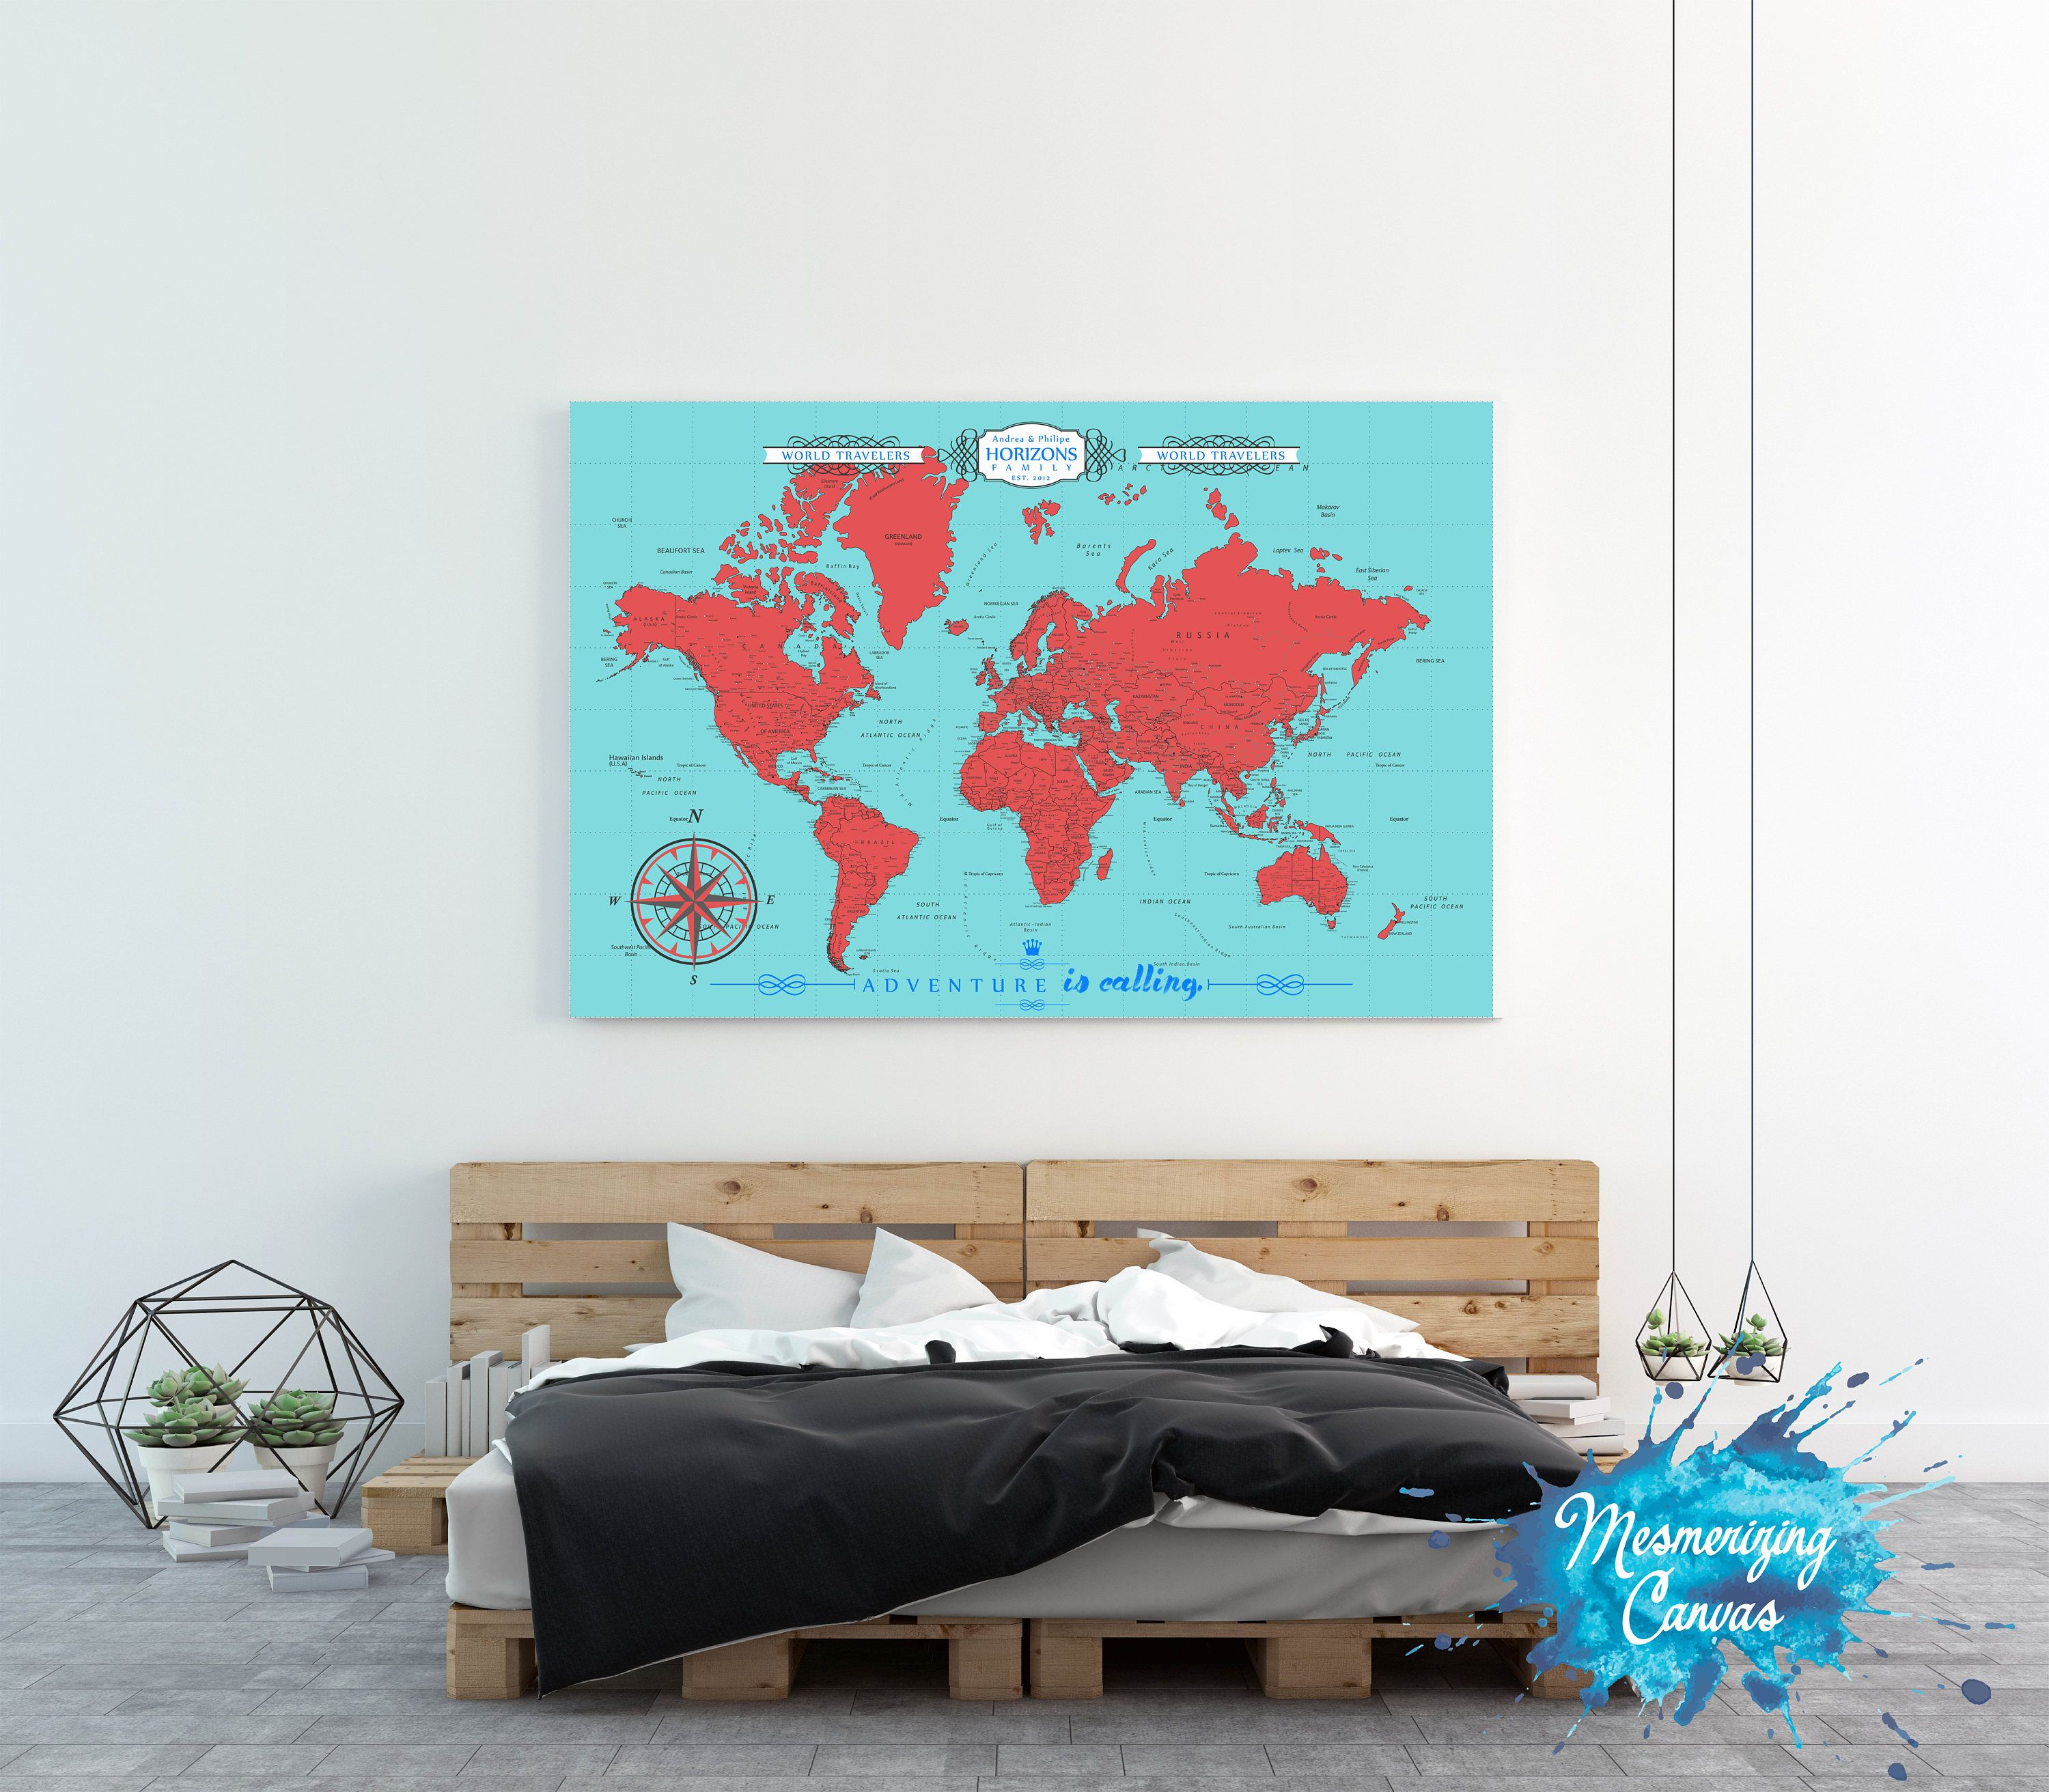 Housewarming gift push pin travel map world travels map travel housewarming gift push pin travel map world travels map travel map world map push pin map welcome sign push pin trip planner mapaa gumiabroncs Image collections